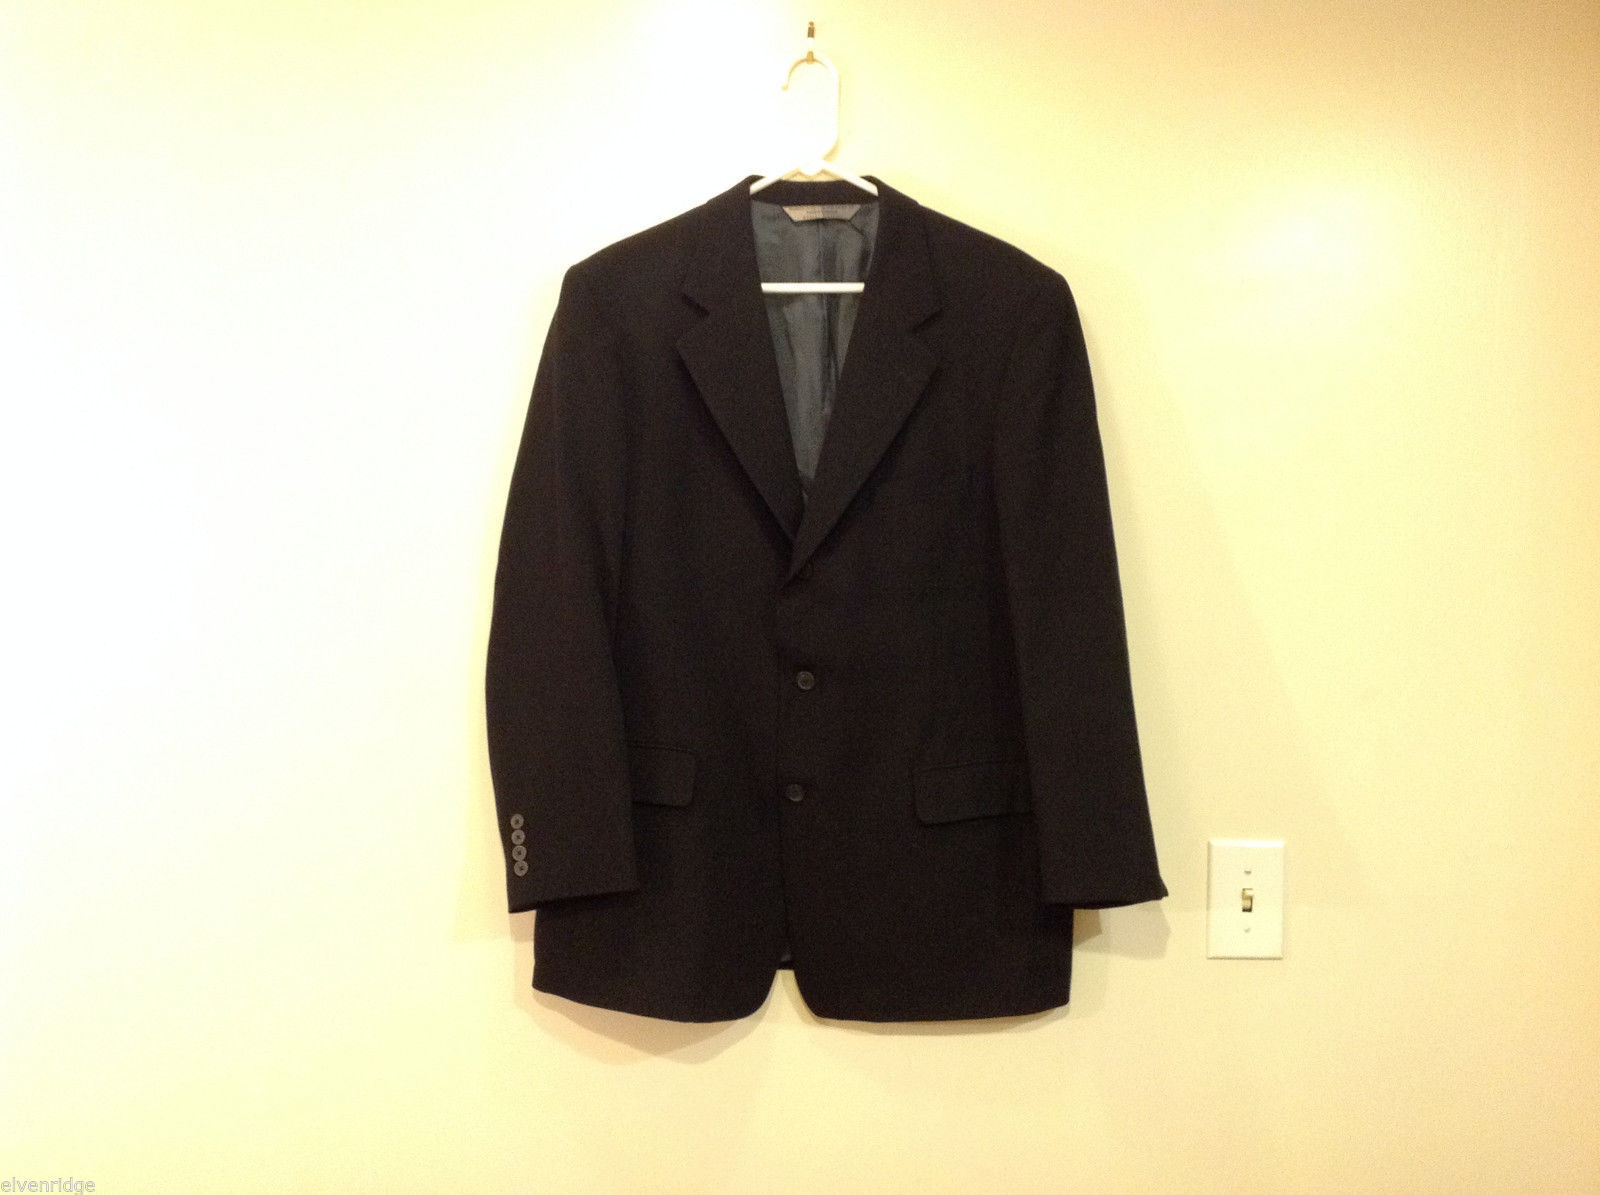 Nordstrom Signia Three Buttons Black Blazer Suit Jacket Size 41R